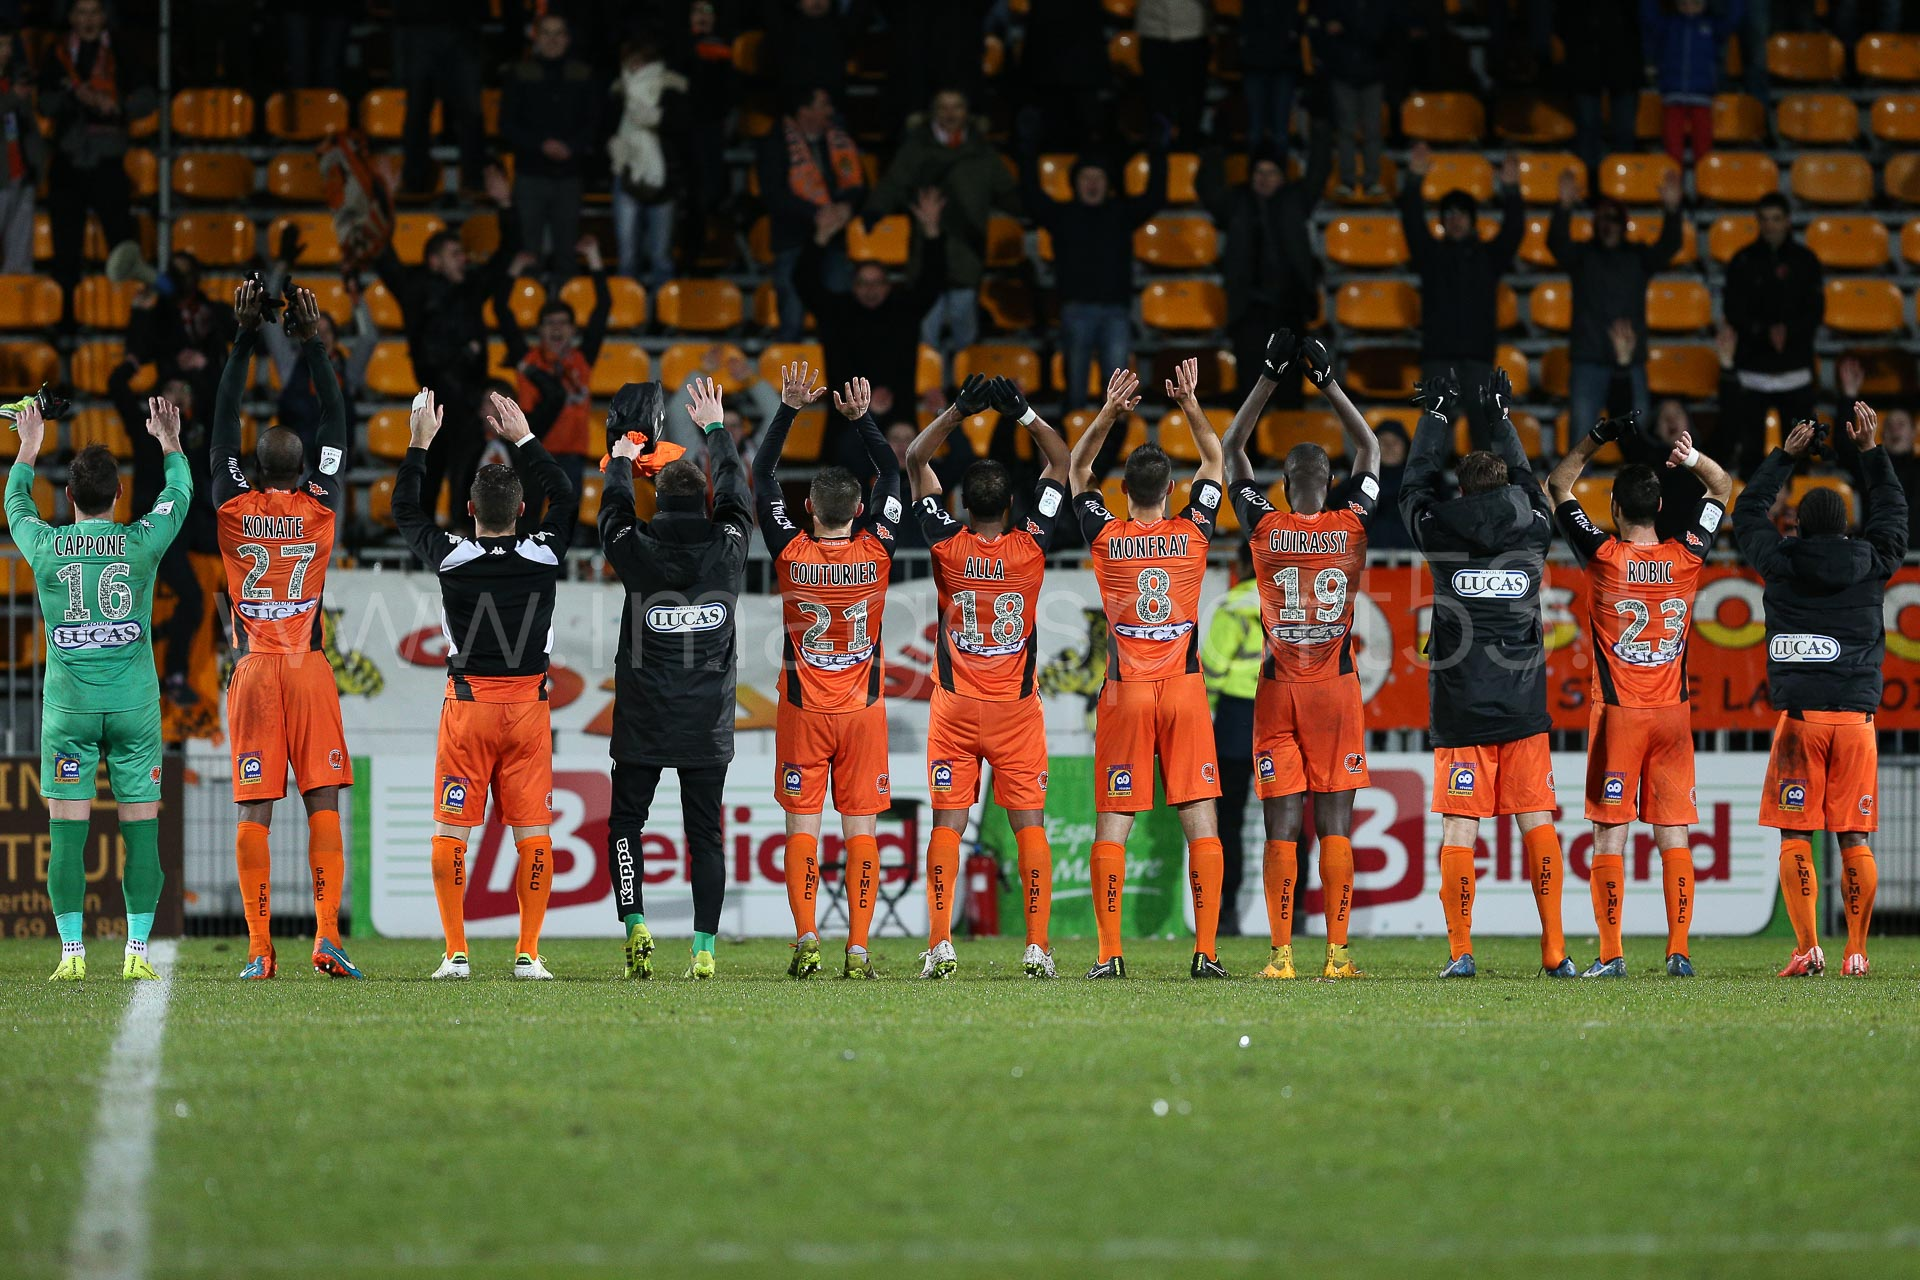 NG-Ligue2-1415-J22-Laval-Troyes_22